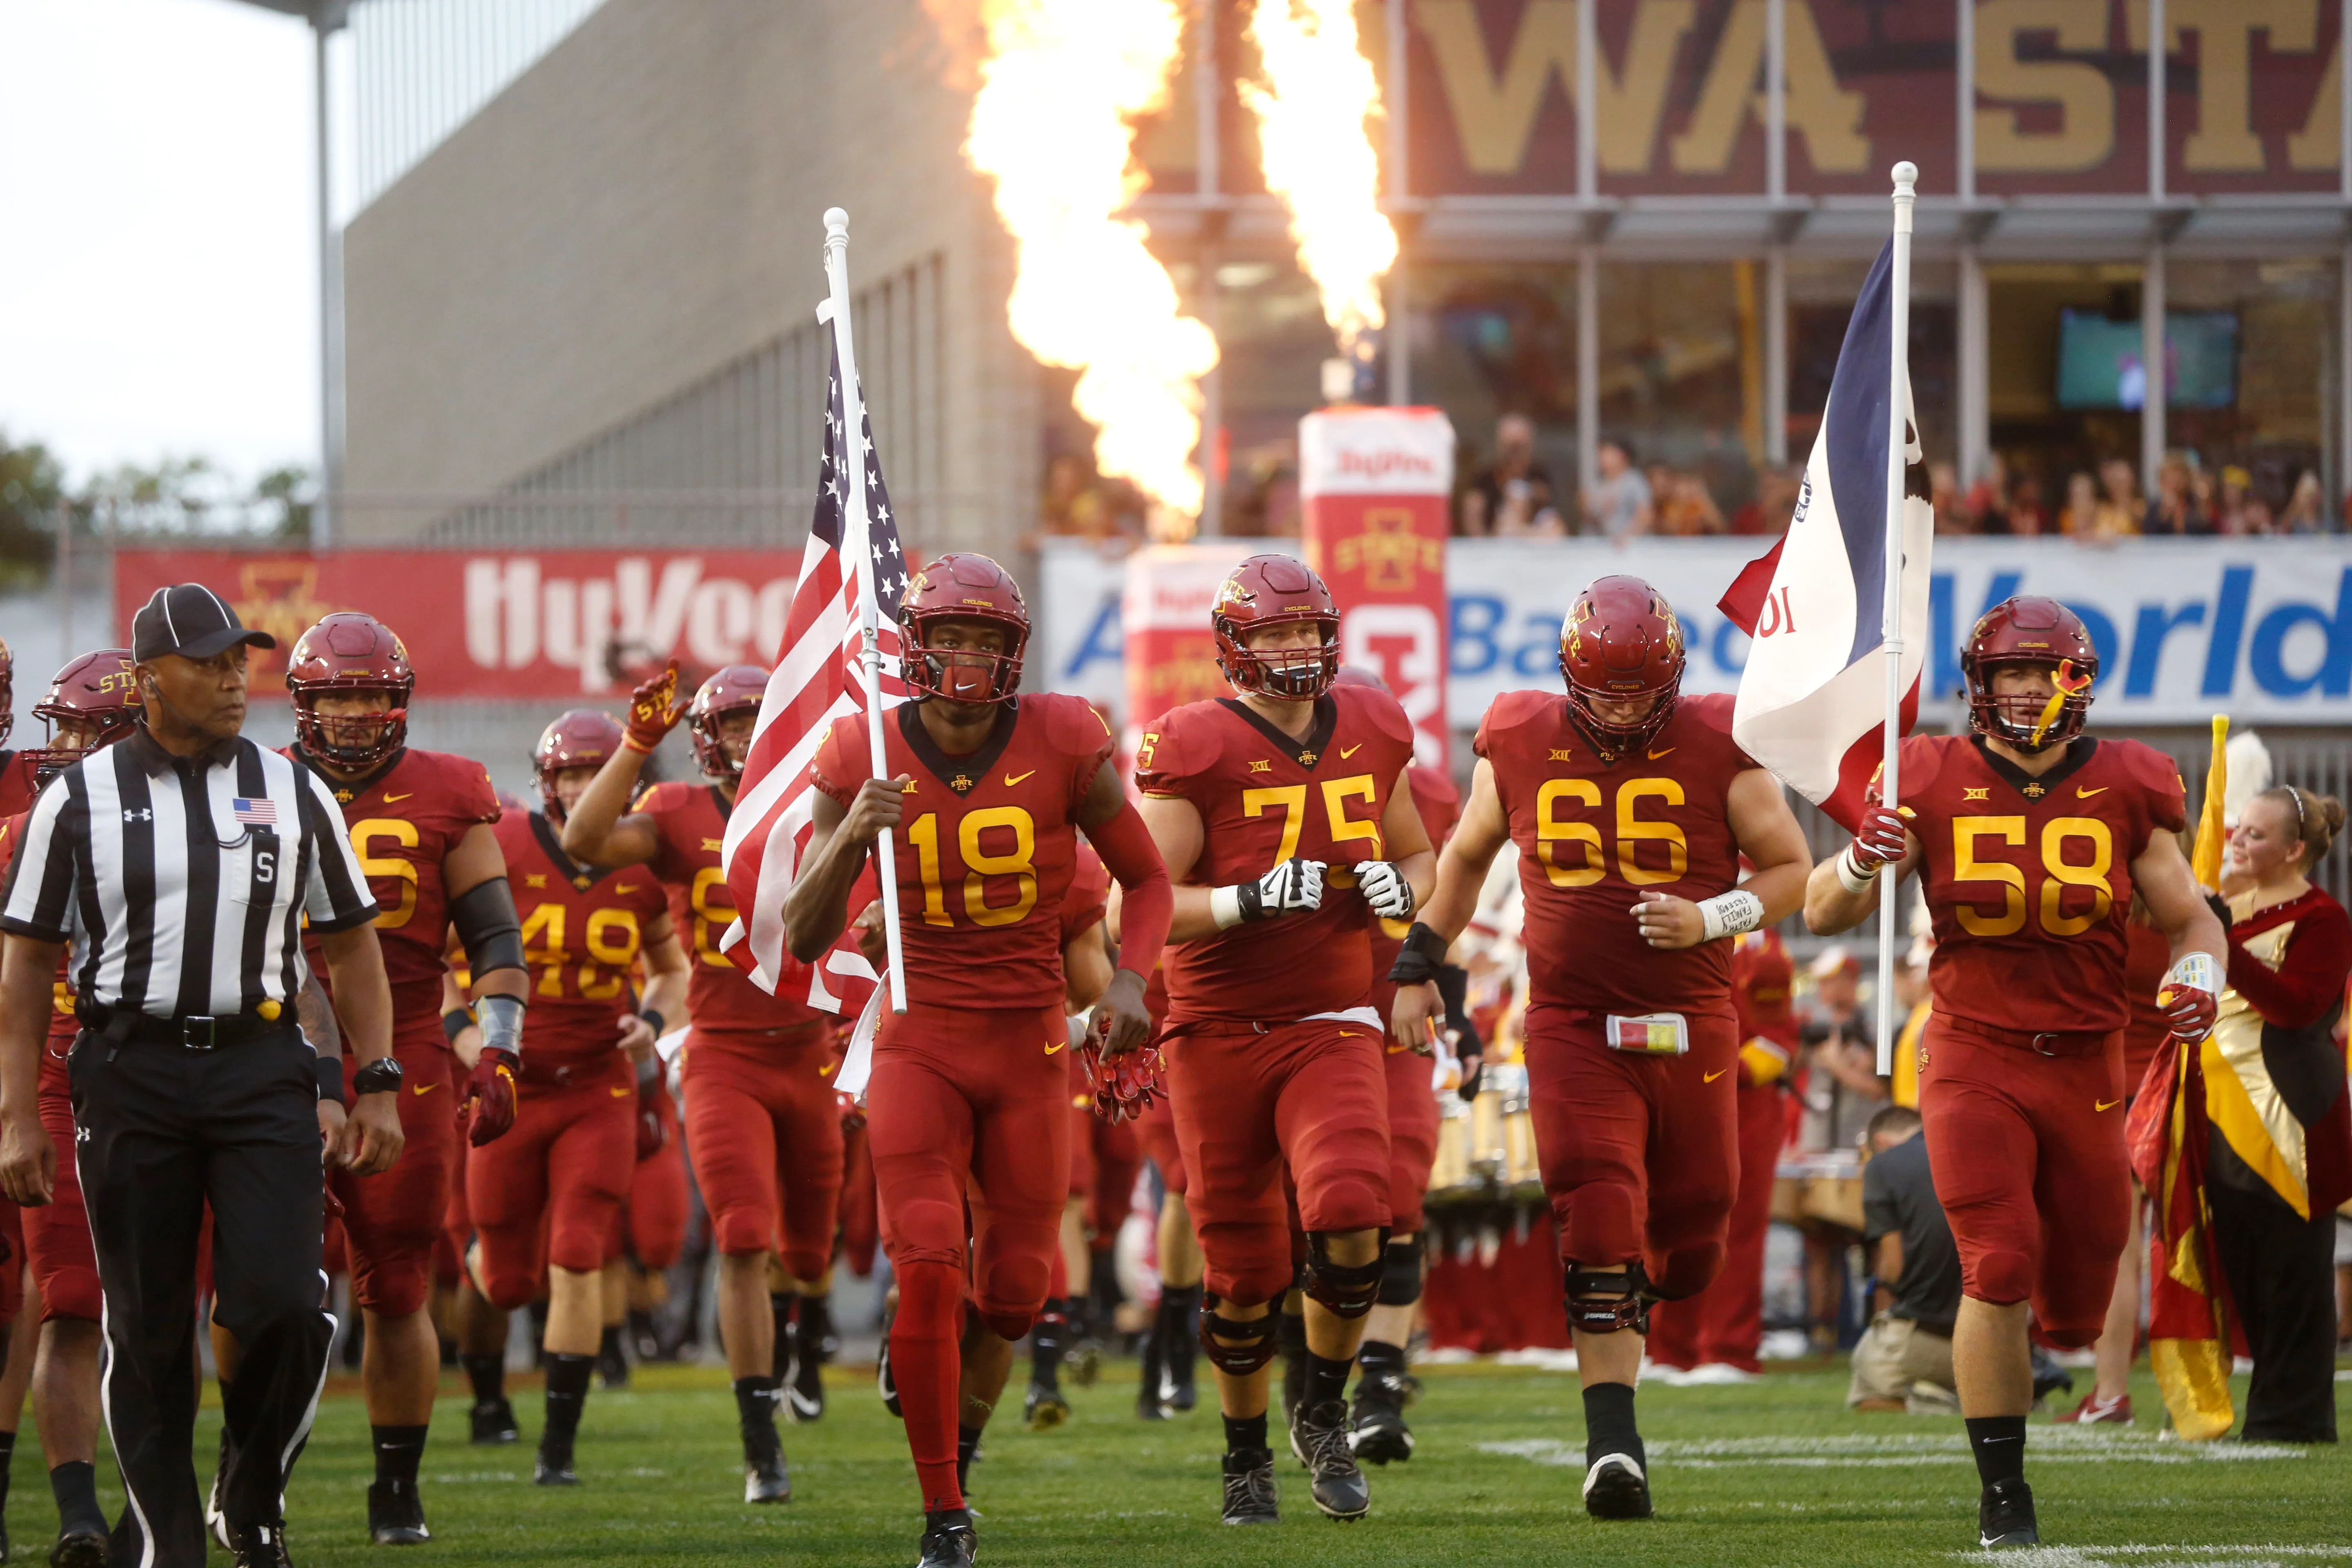 Stats file details on projected cy hawk football starters for iowa state and also ncaa depth chart at rh desmoinesregister